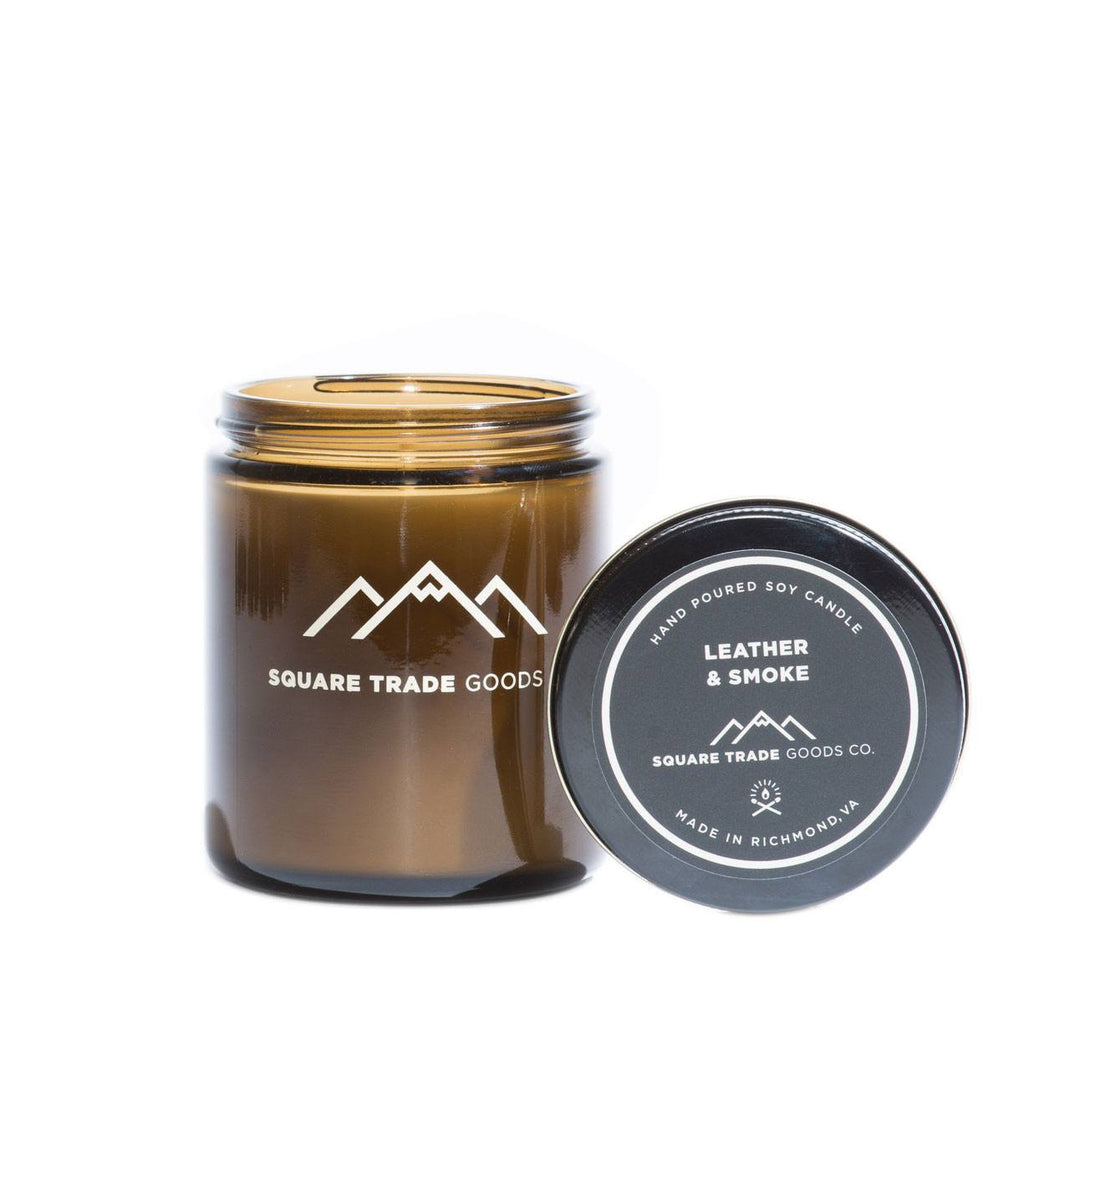 Square Trade Goods Candle - Leather & Smoke - Home Essentials - Iron and Resin